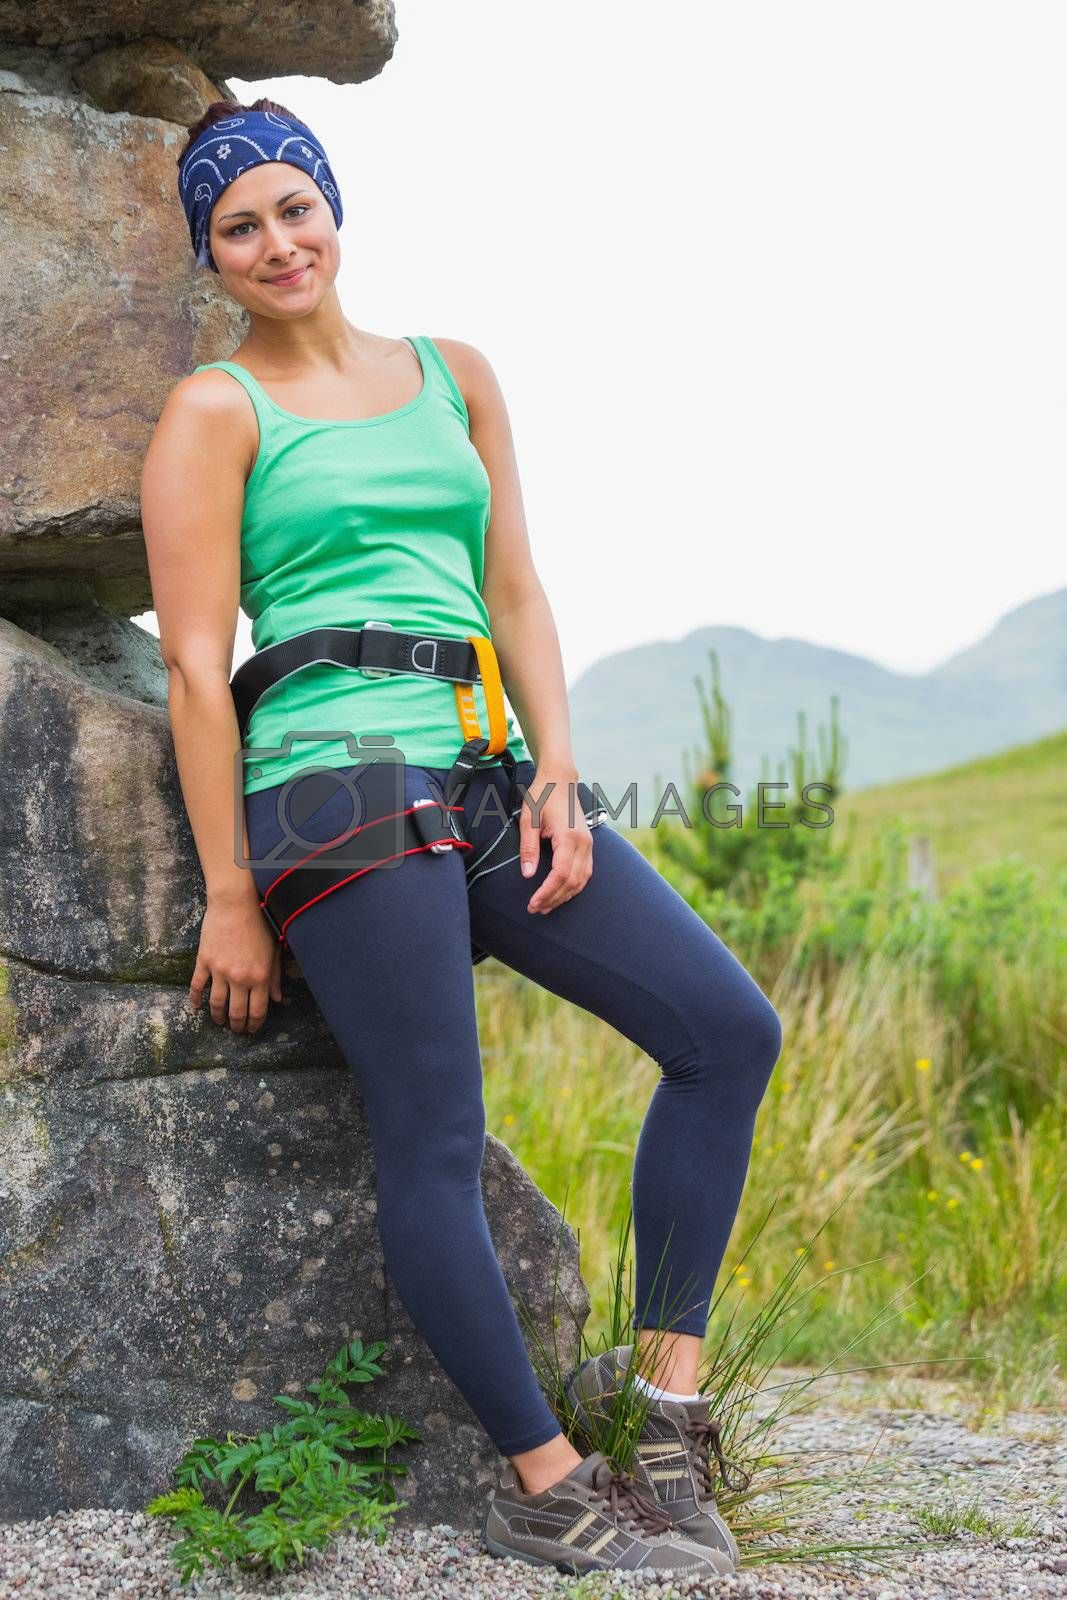 Attractive female rock climber leaning on rock face smiling  by Wavebreakmedia